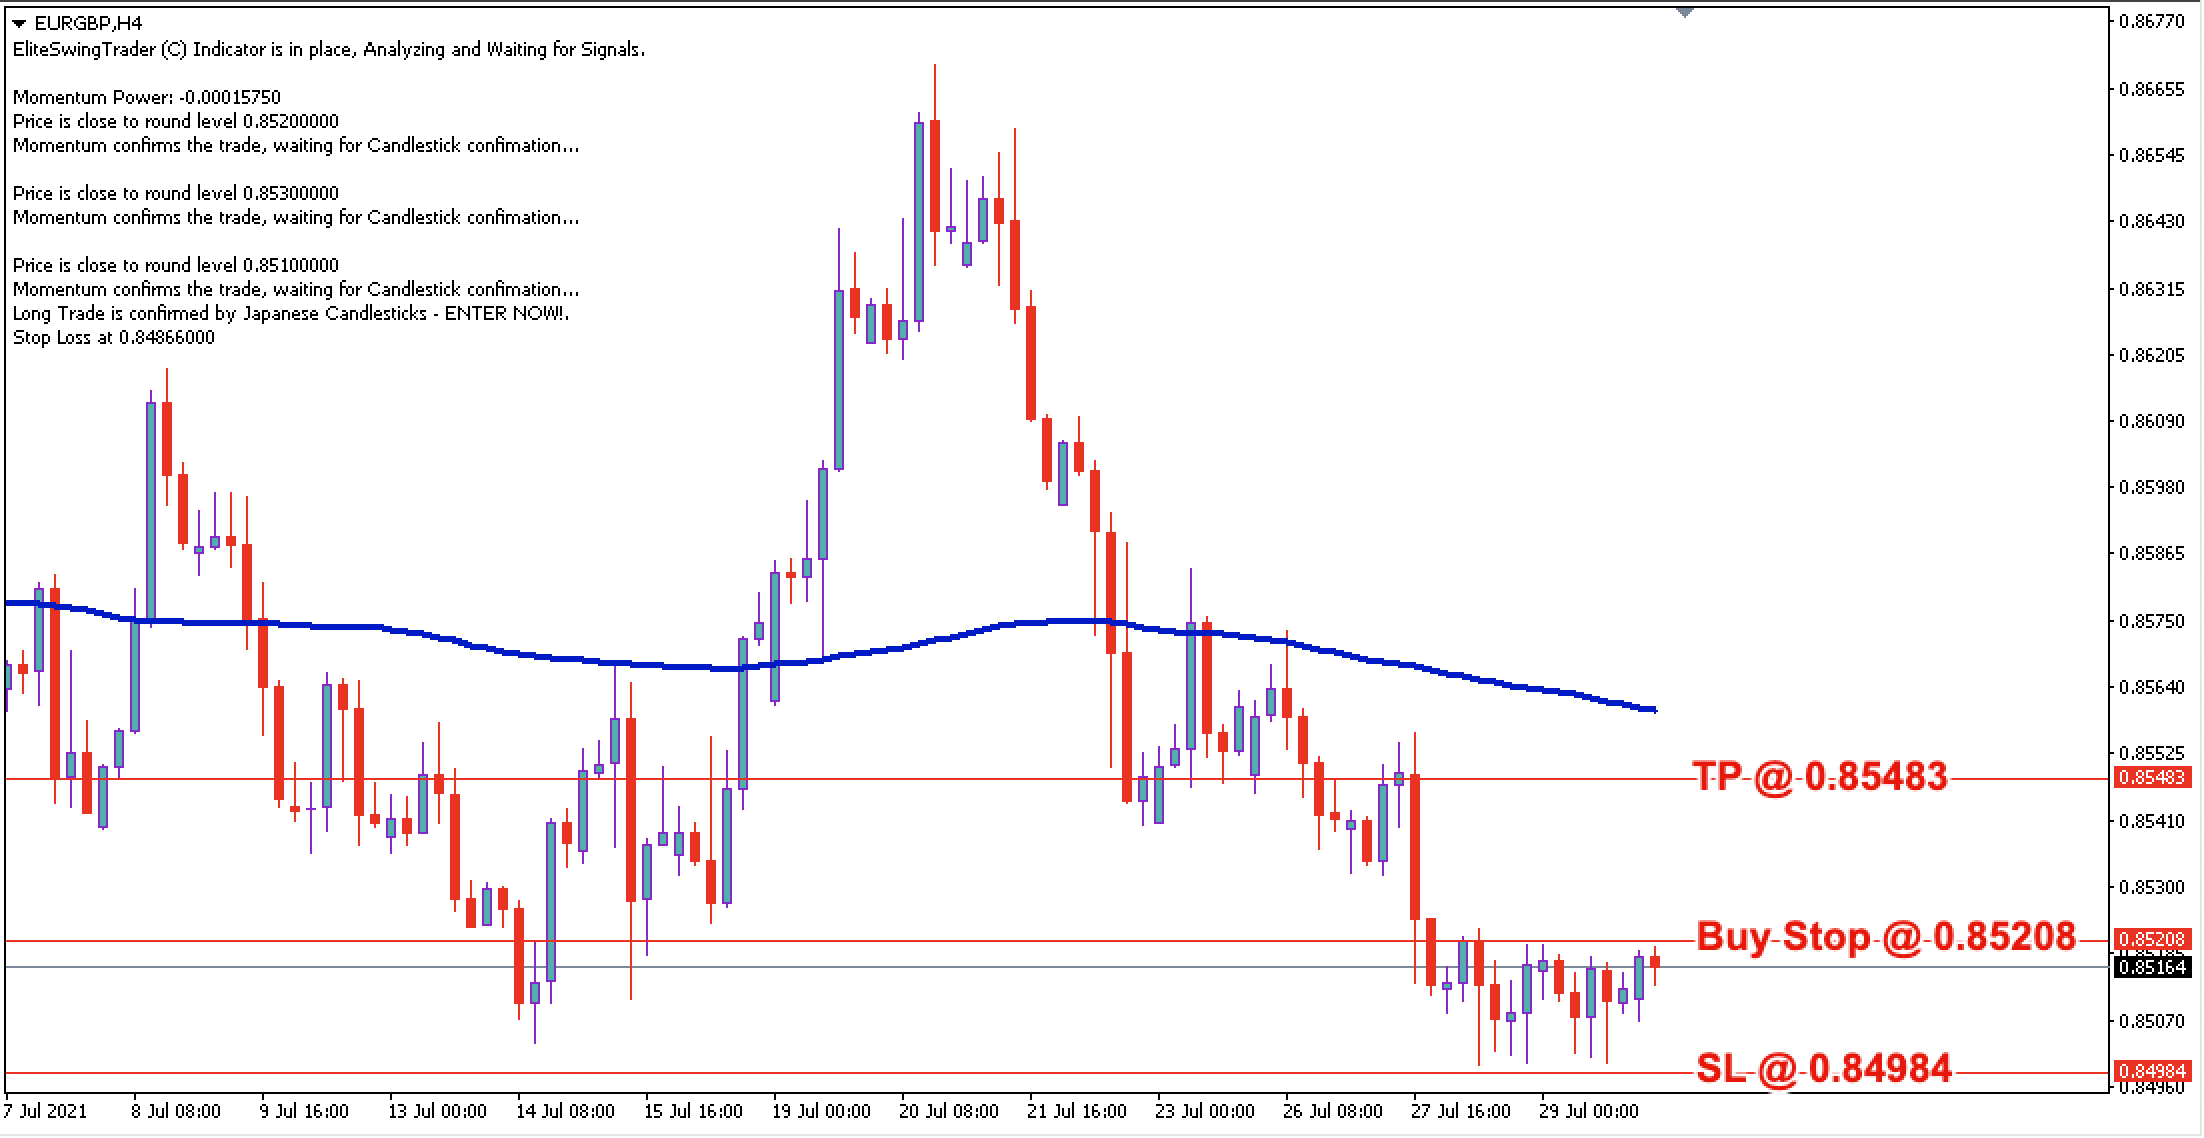 EUR/GBP Daily Price Forecast – 30th July 2021